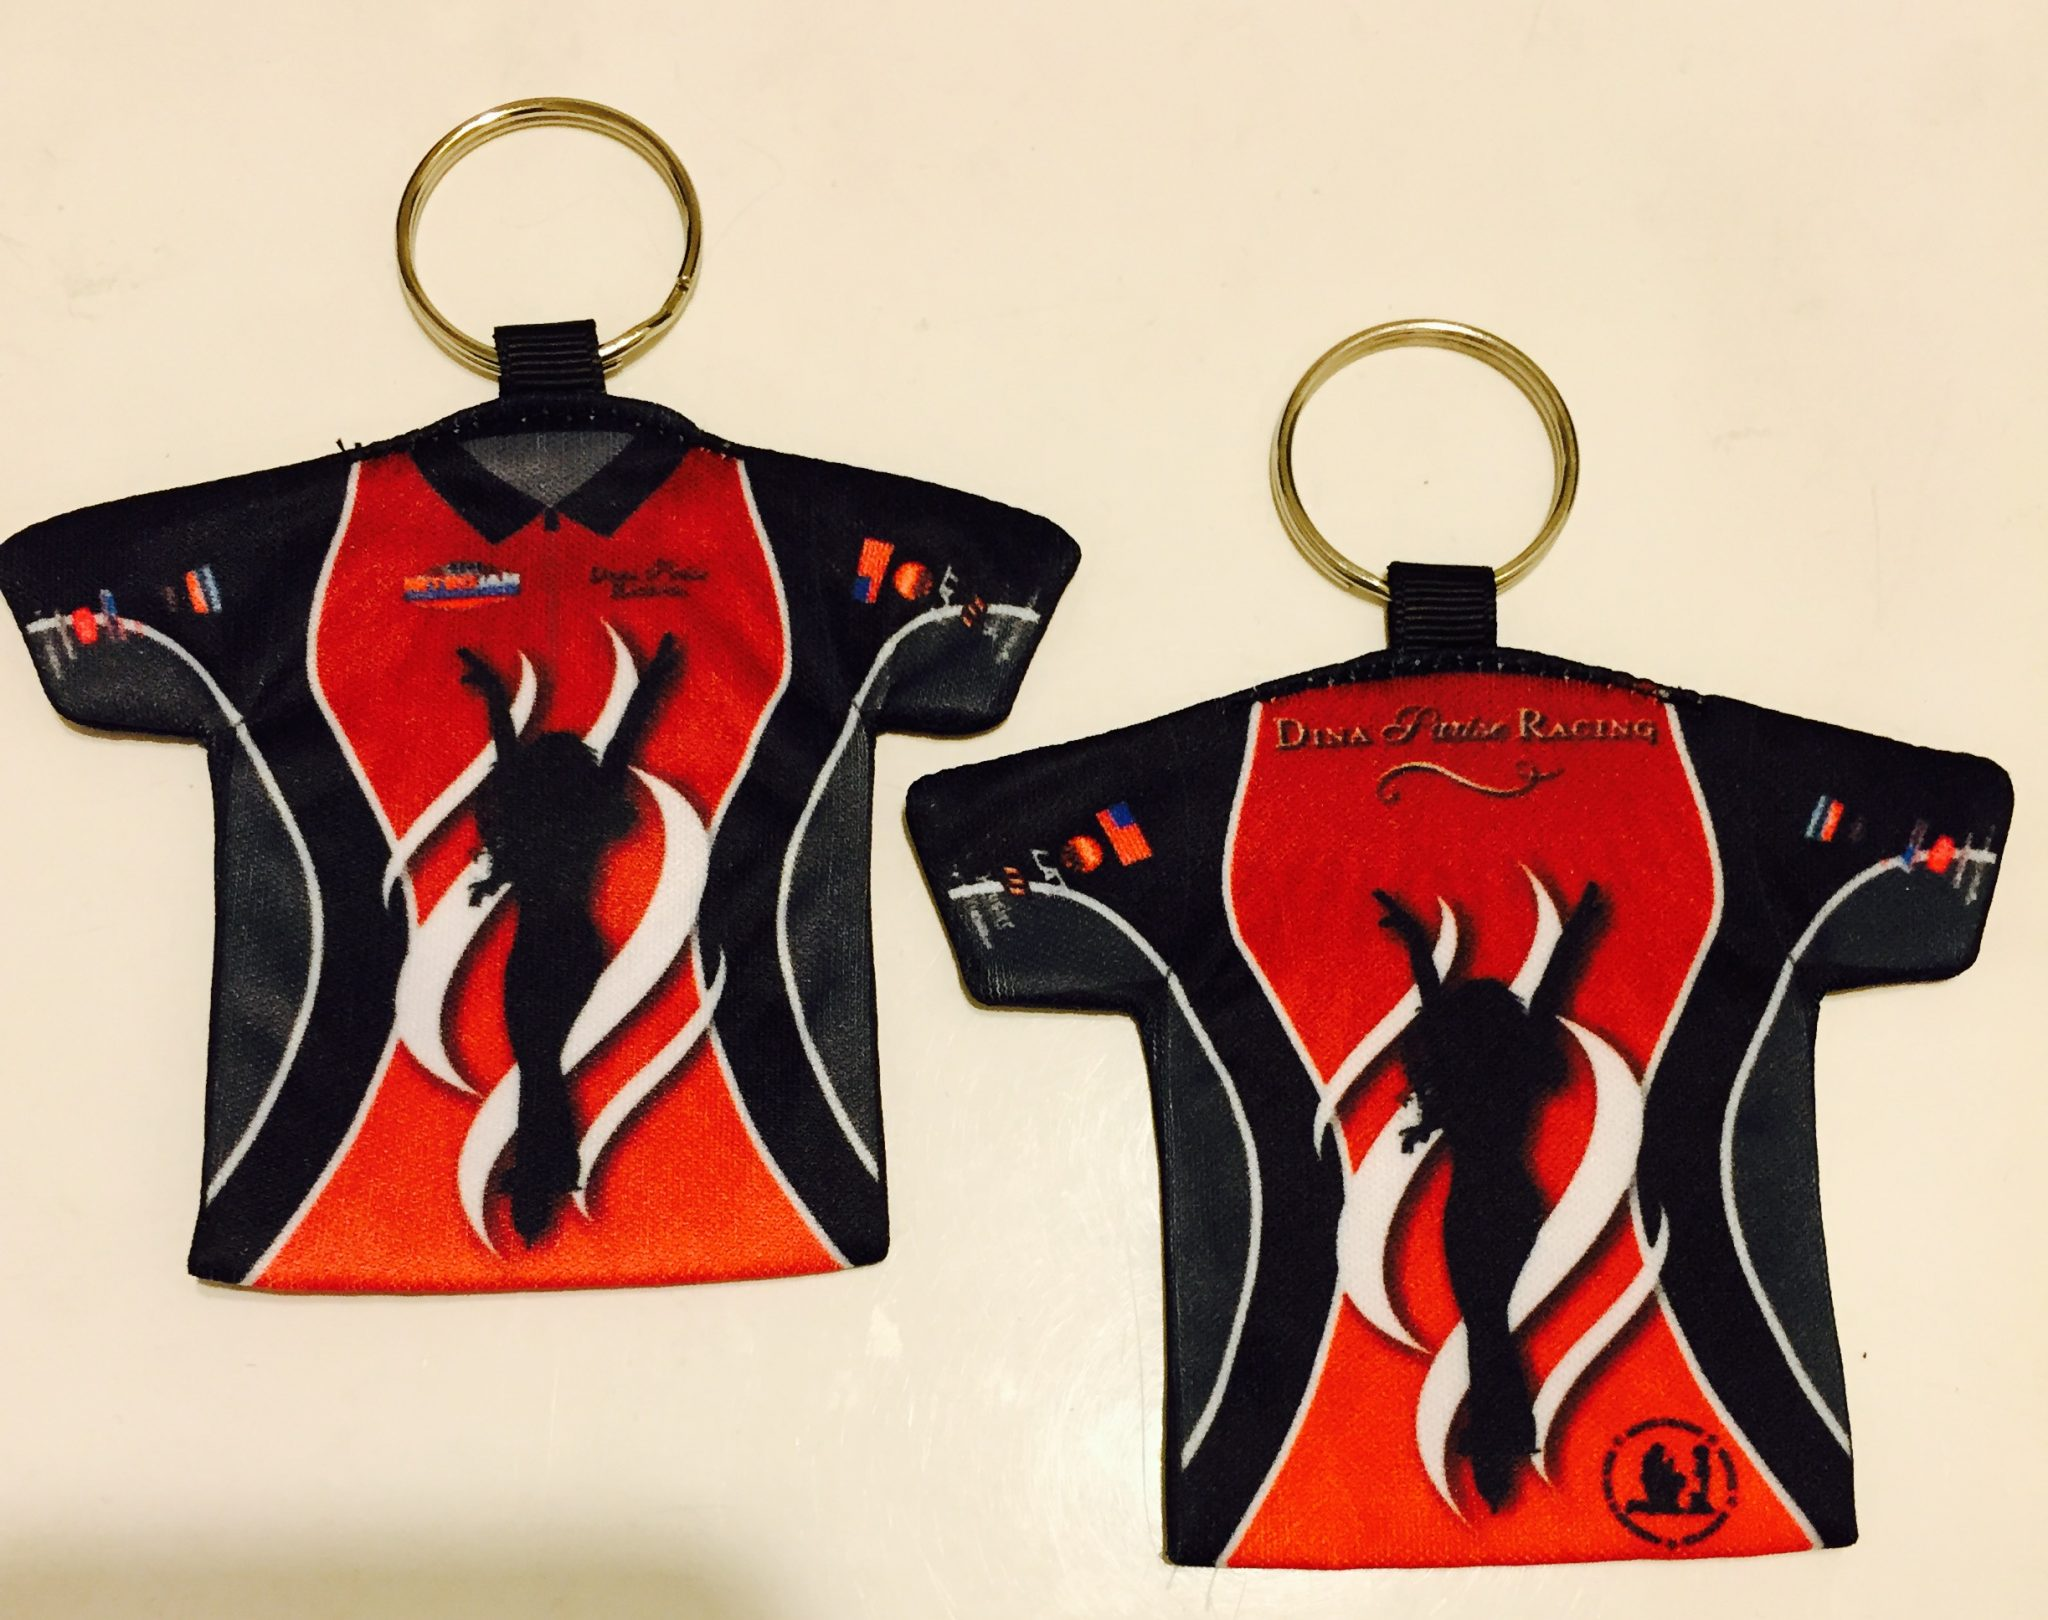 Dina Parise Racing Key Chains